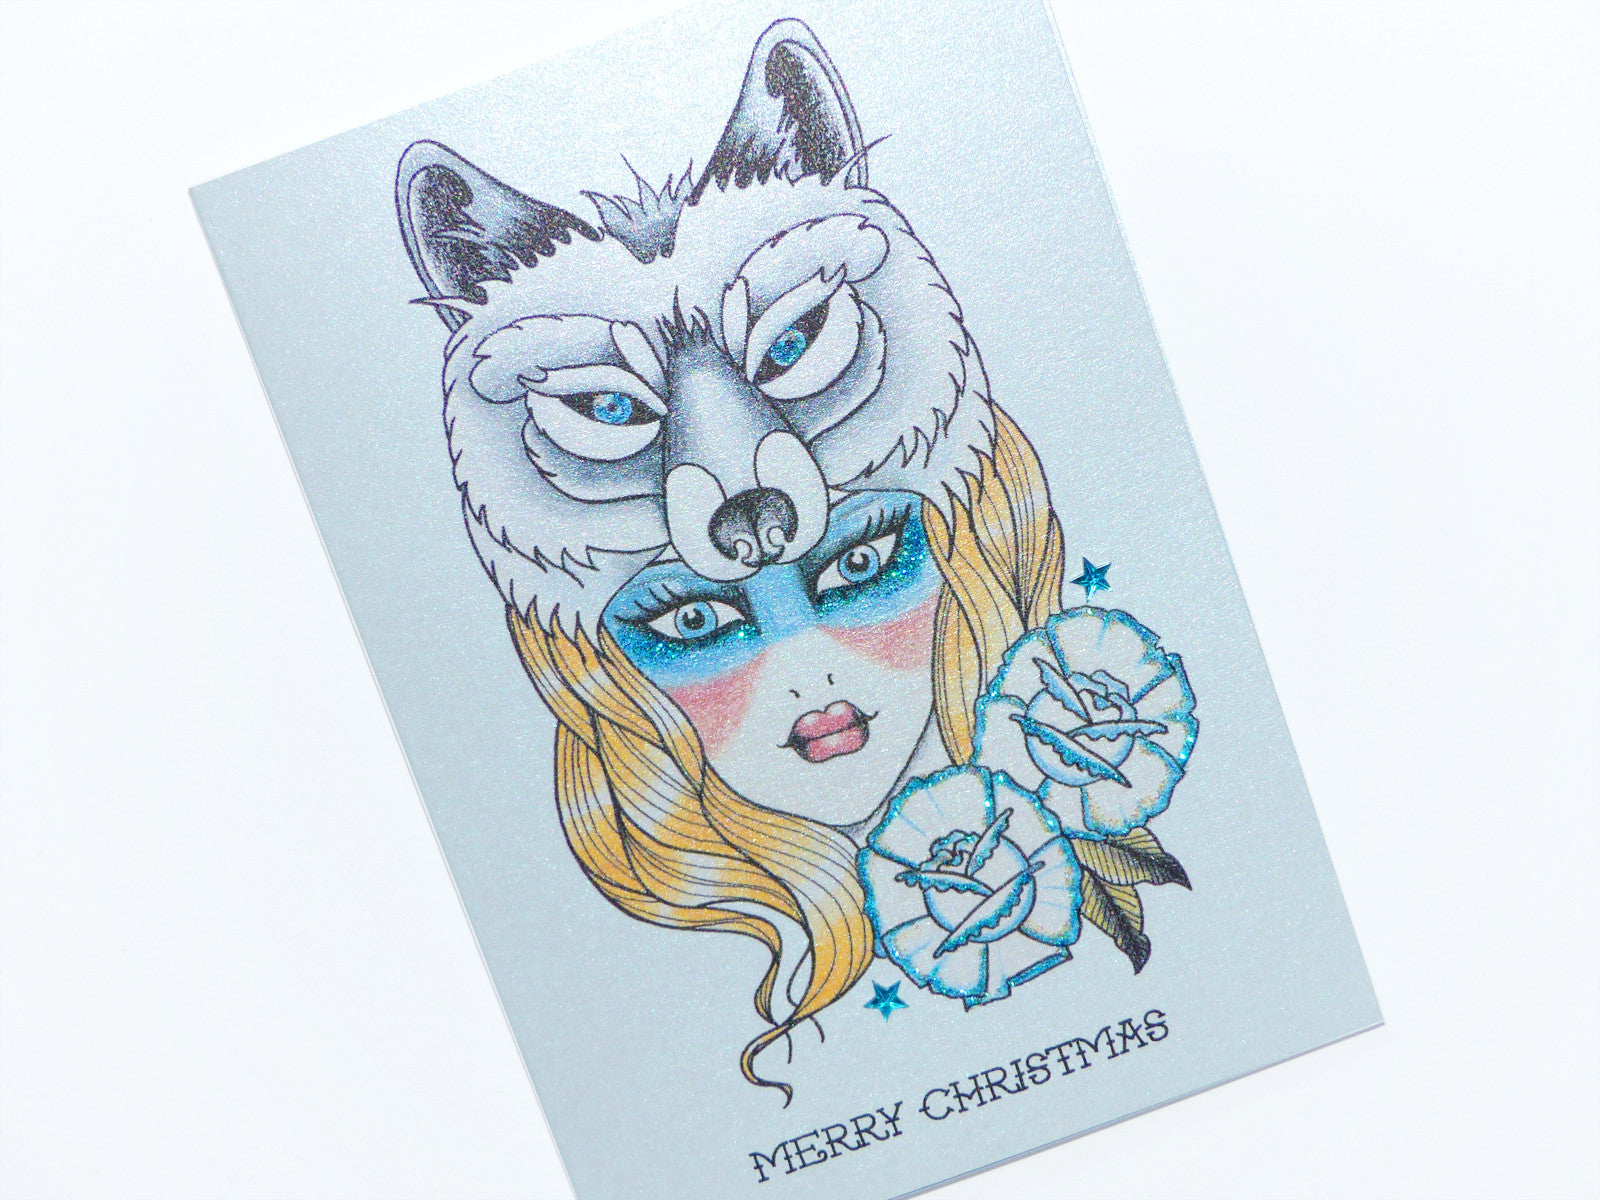 Vickilicious Designs | Handmade Alternative Christmas Cards